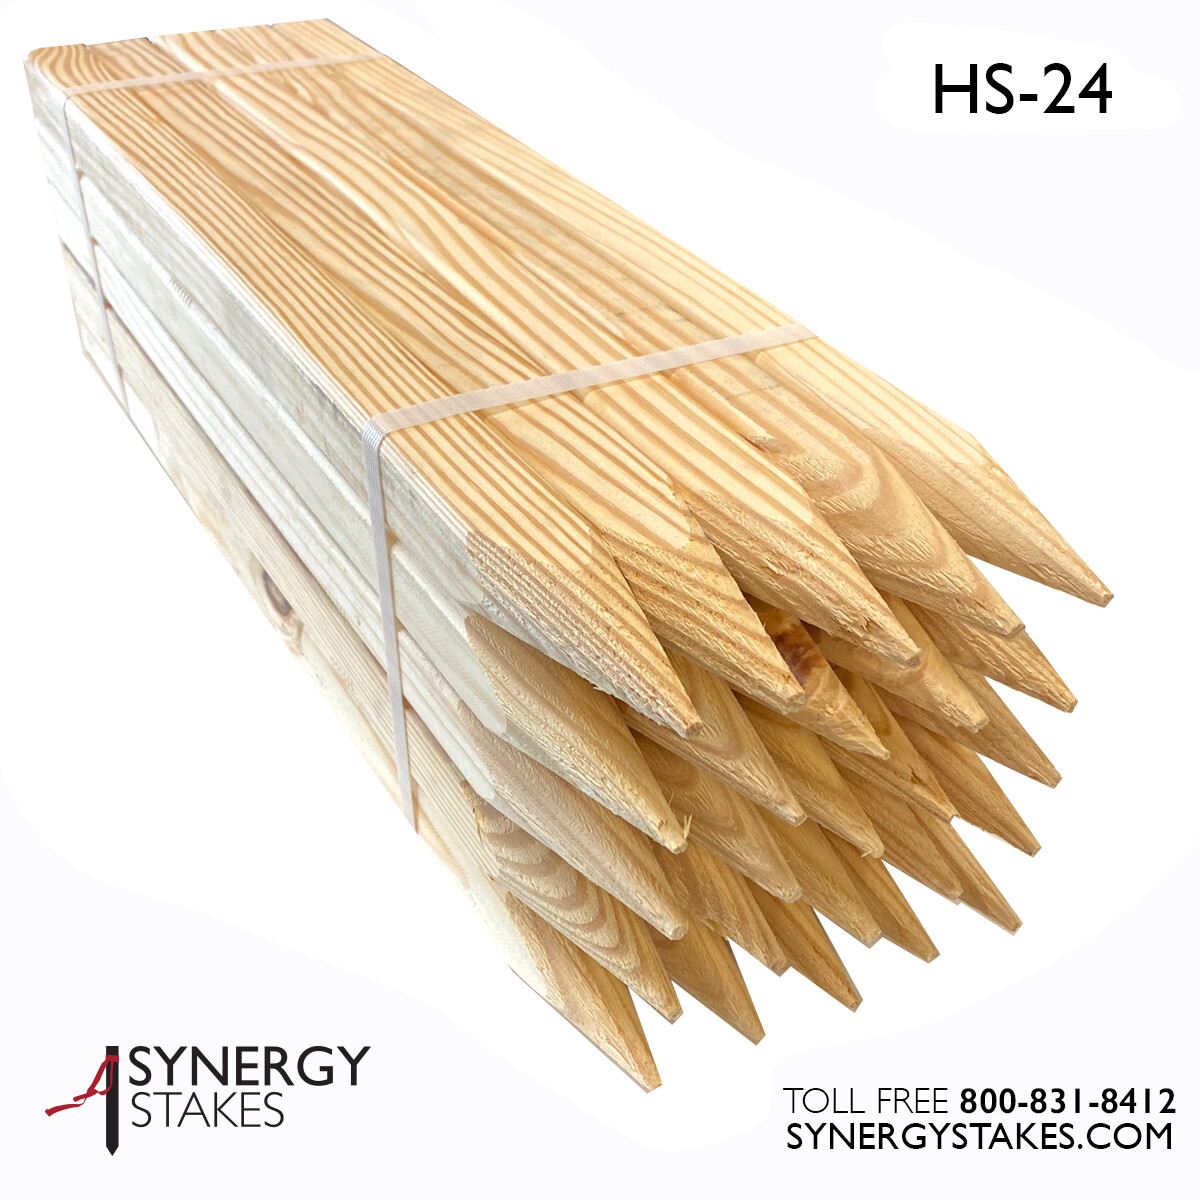 Hub Stakes FULL Pallets